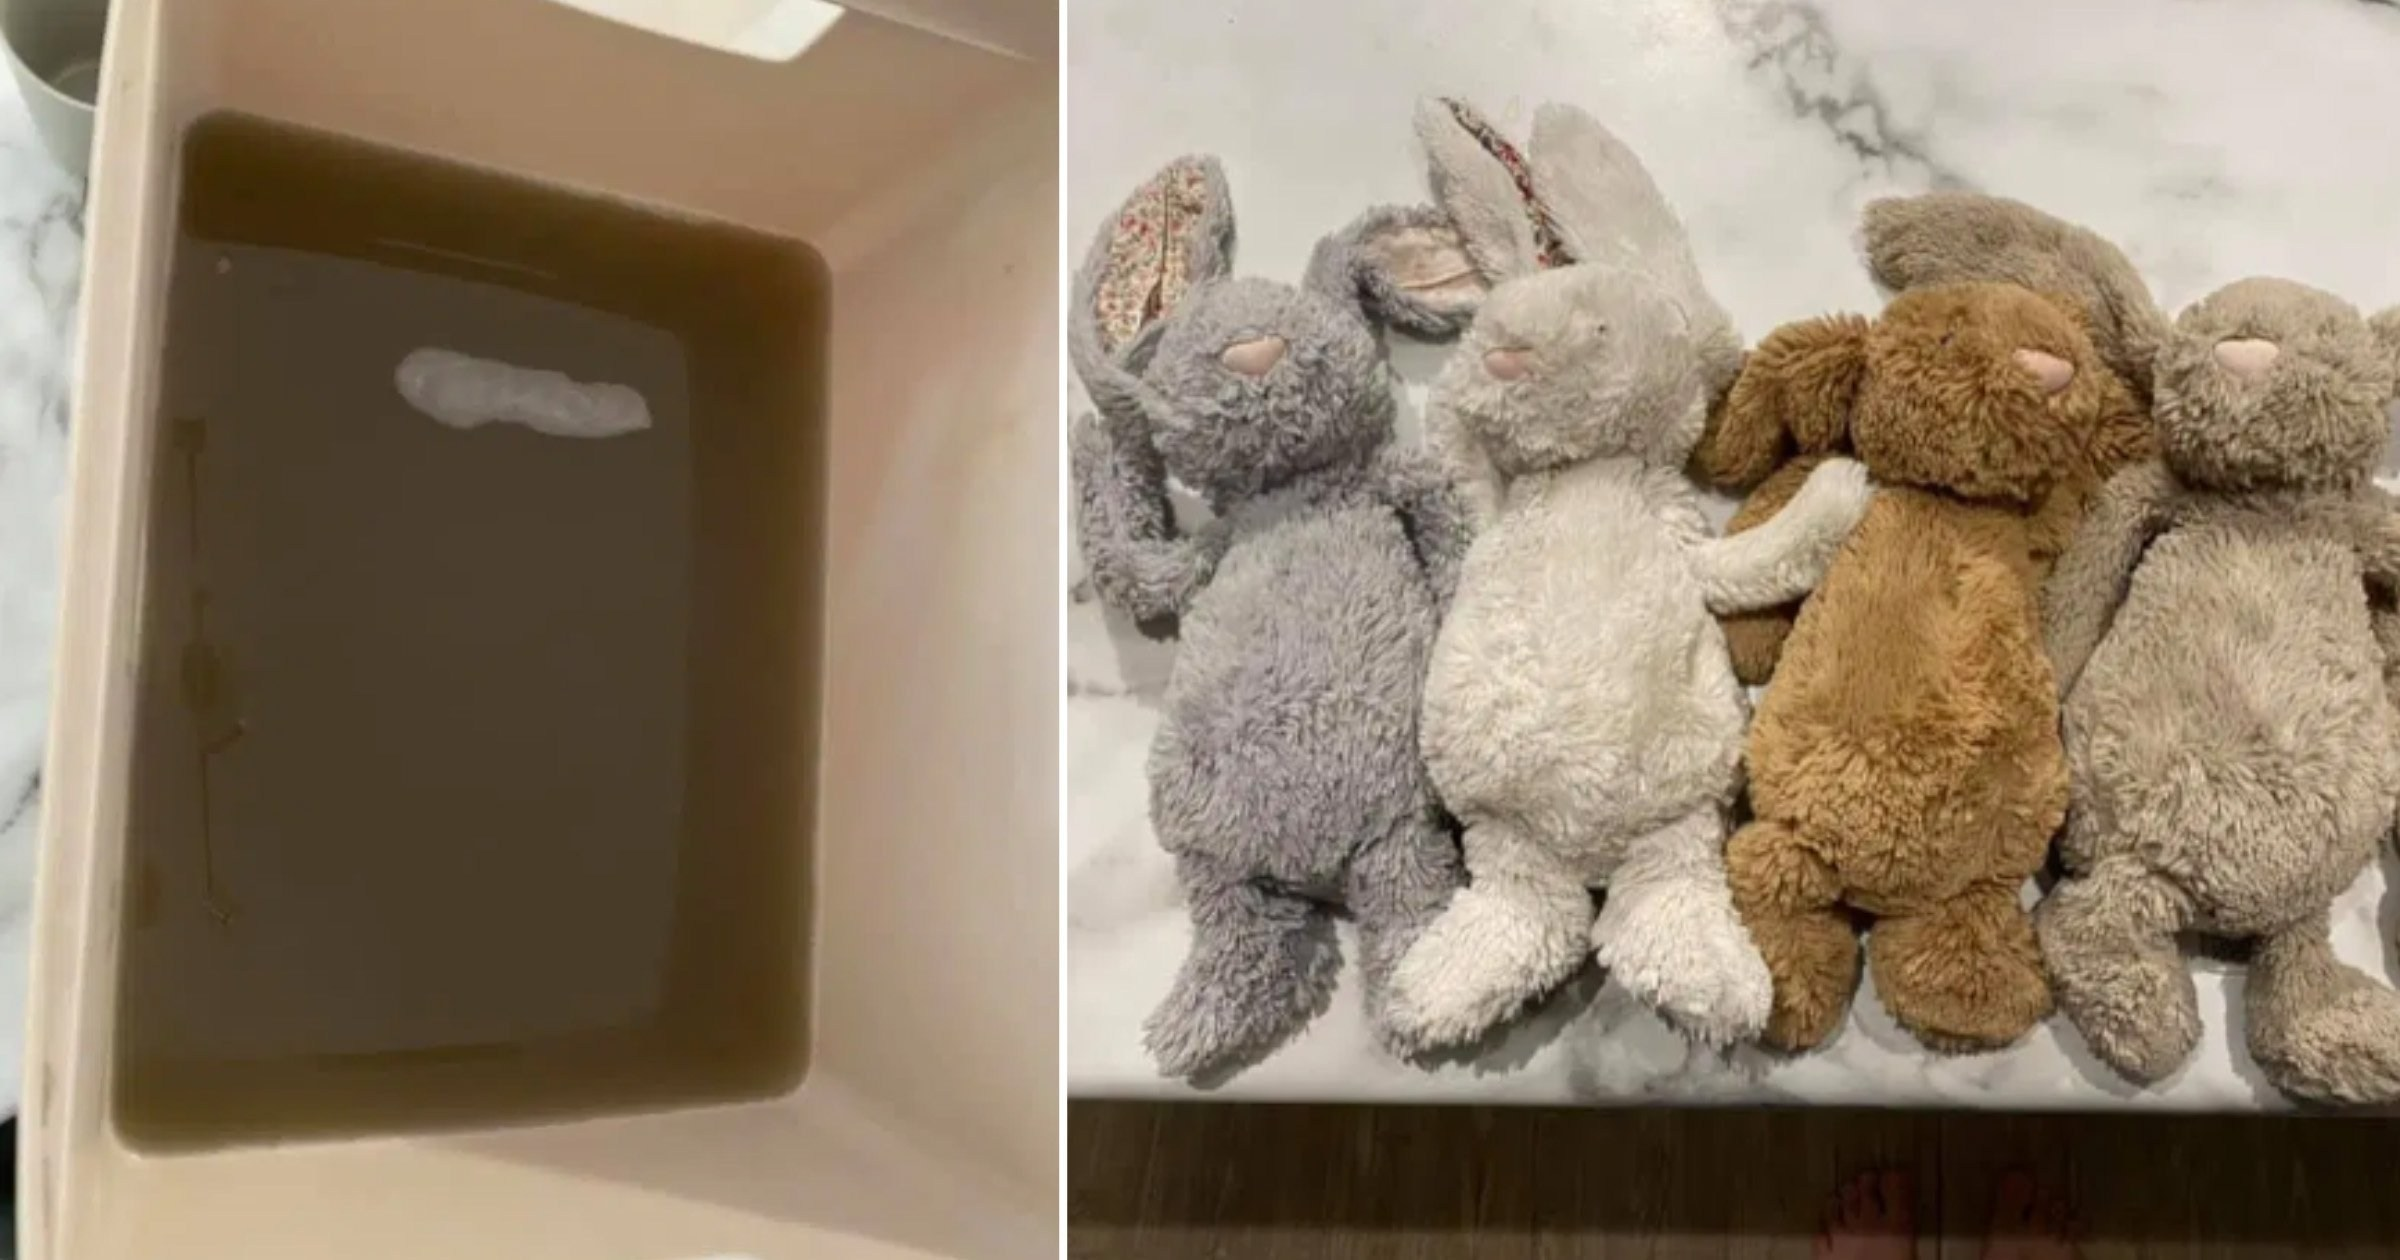 Mum shares grim reminder to wash children's teddies every week